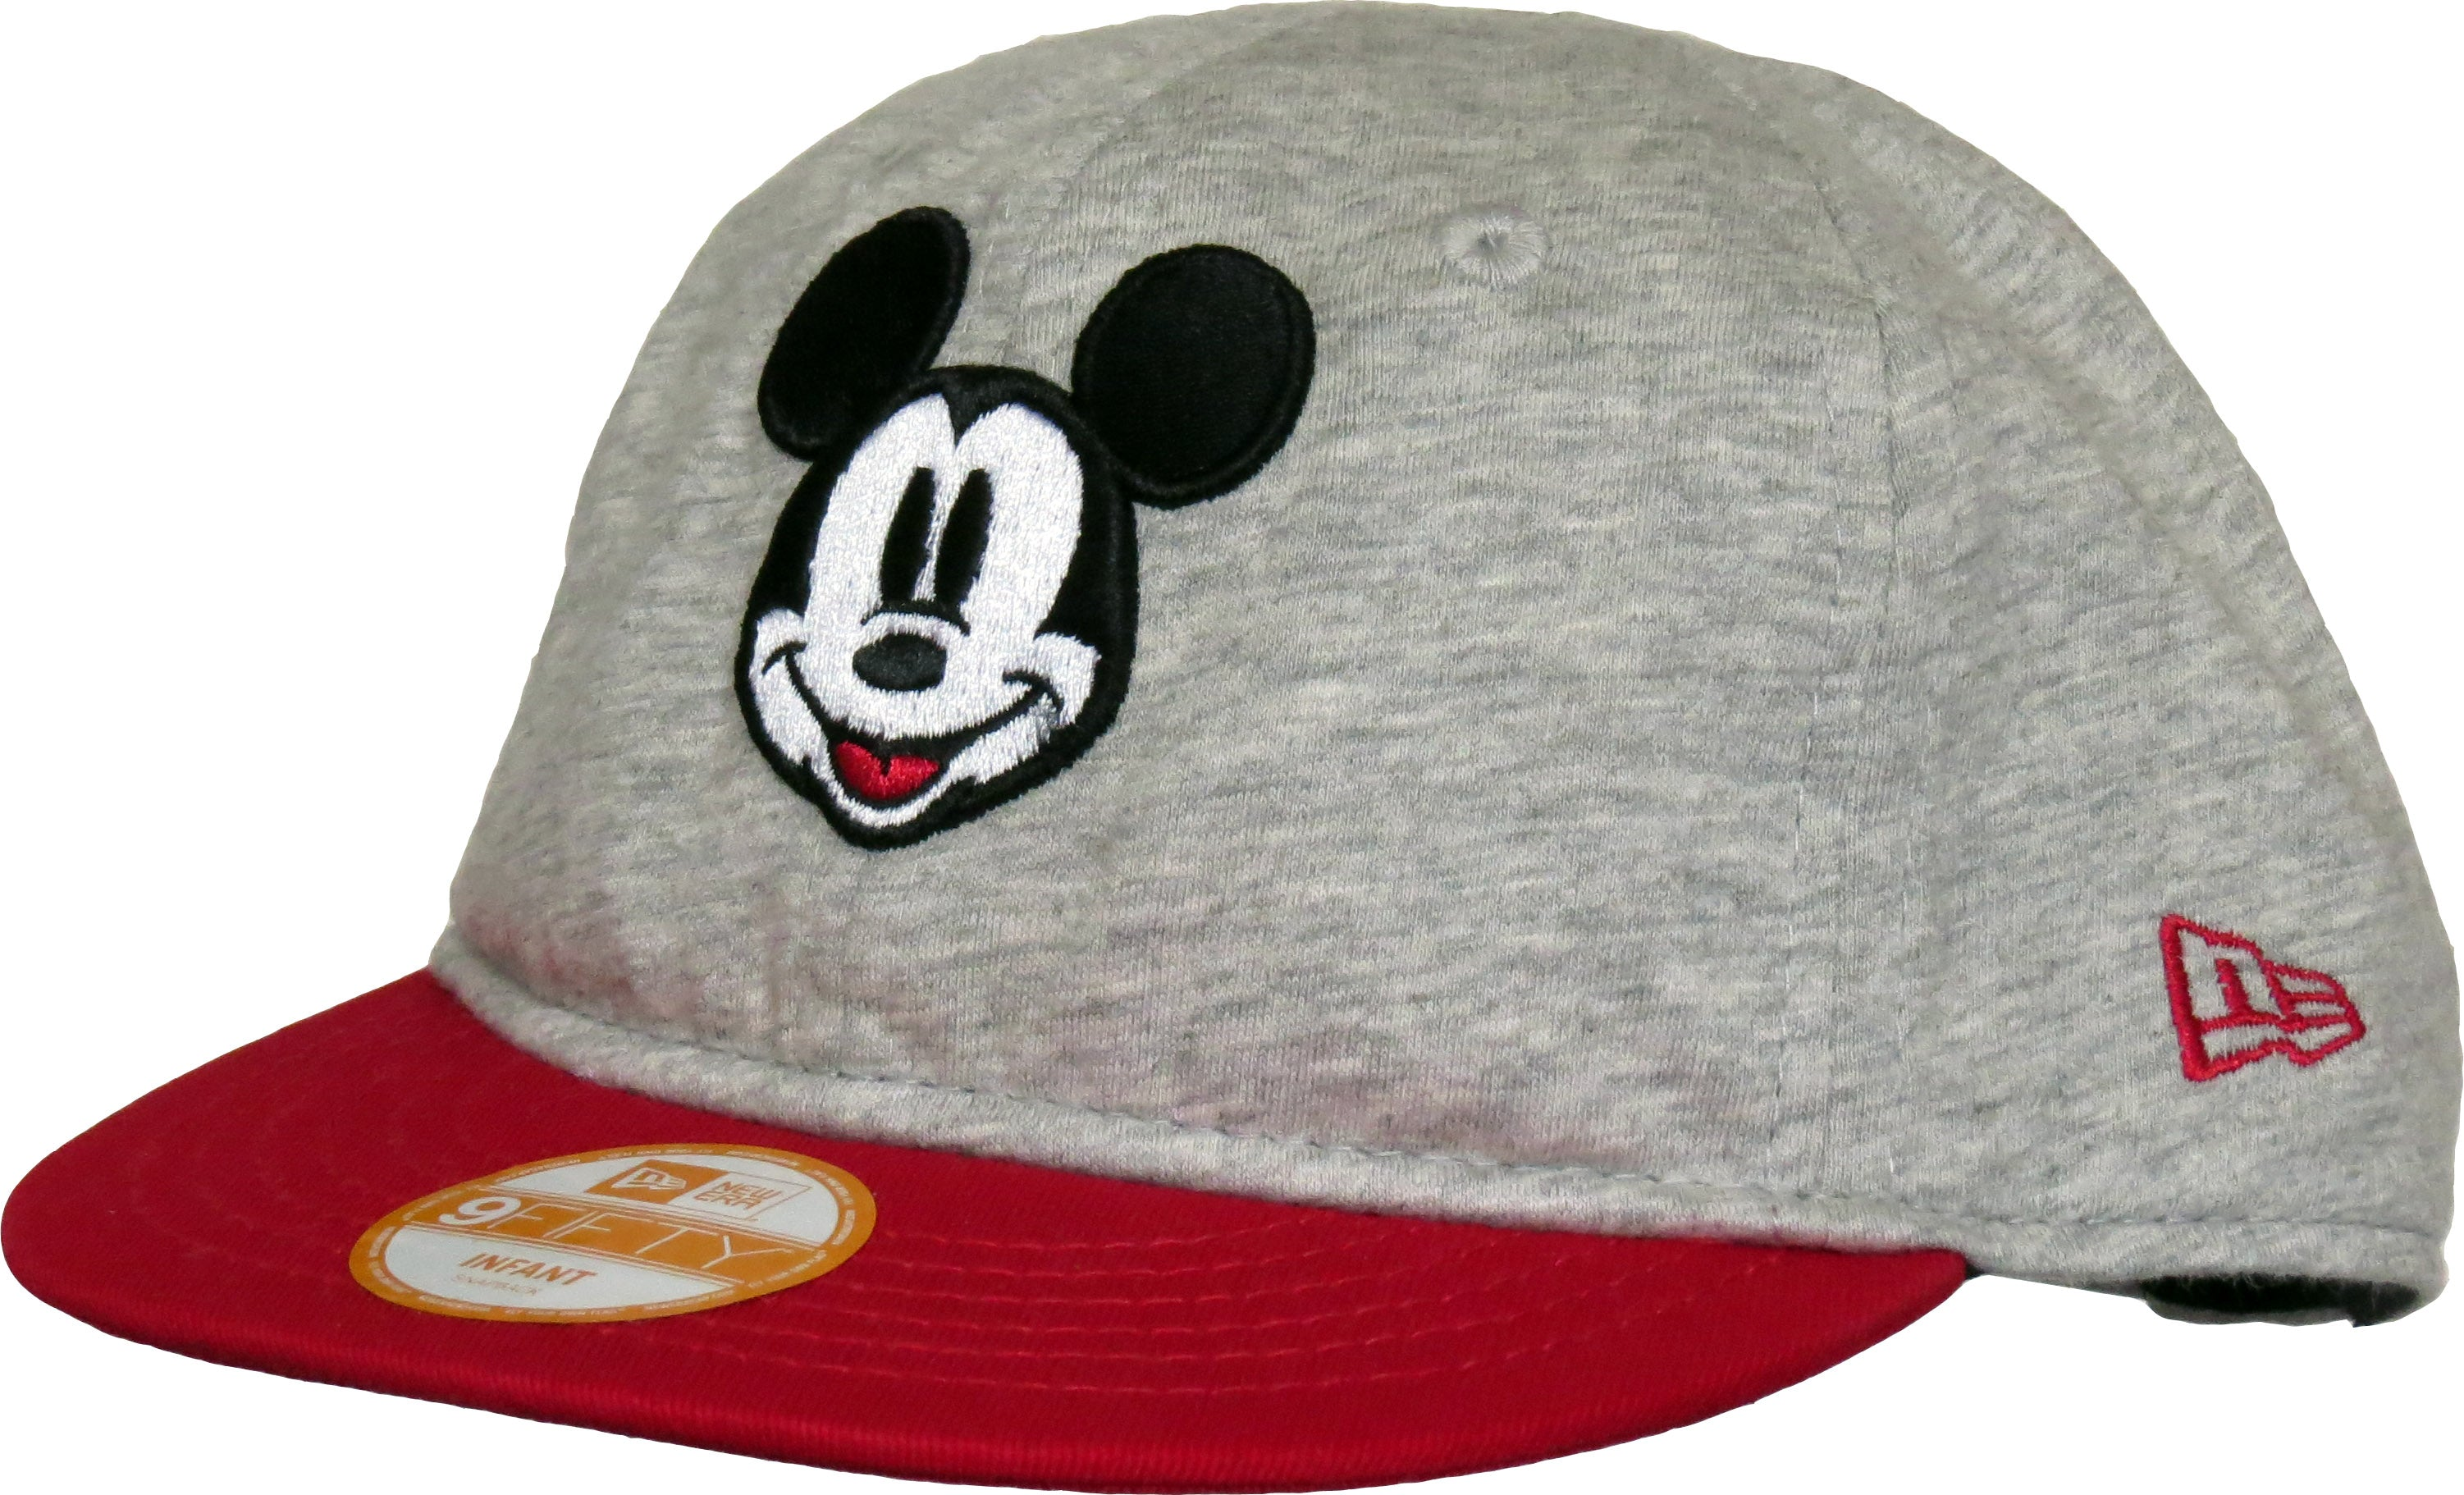 cb0f96e3856 Mickey Mouse New Era 950 Jersey Crown Infant Snapback Cap ( 0 - 2 years old  ...